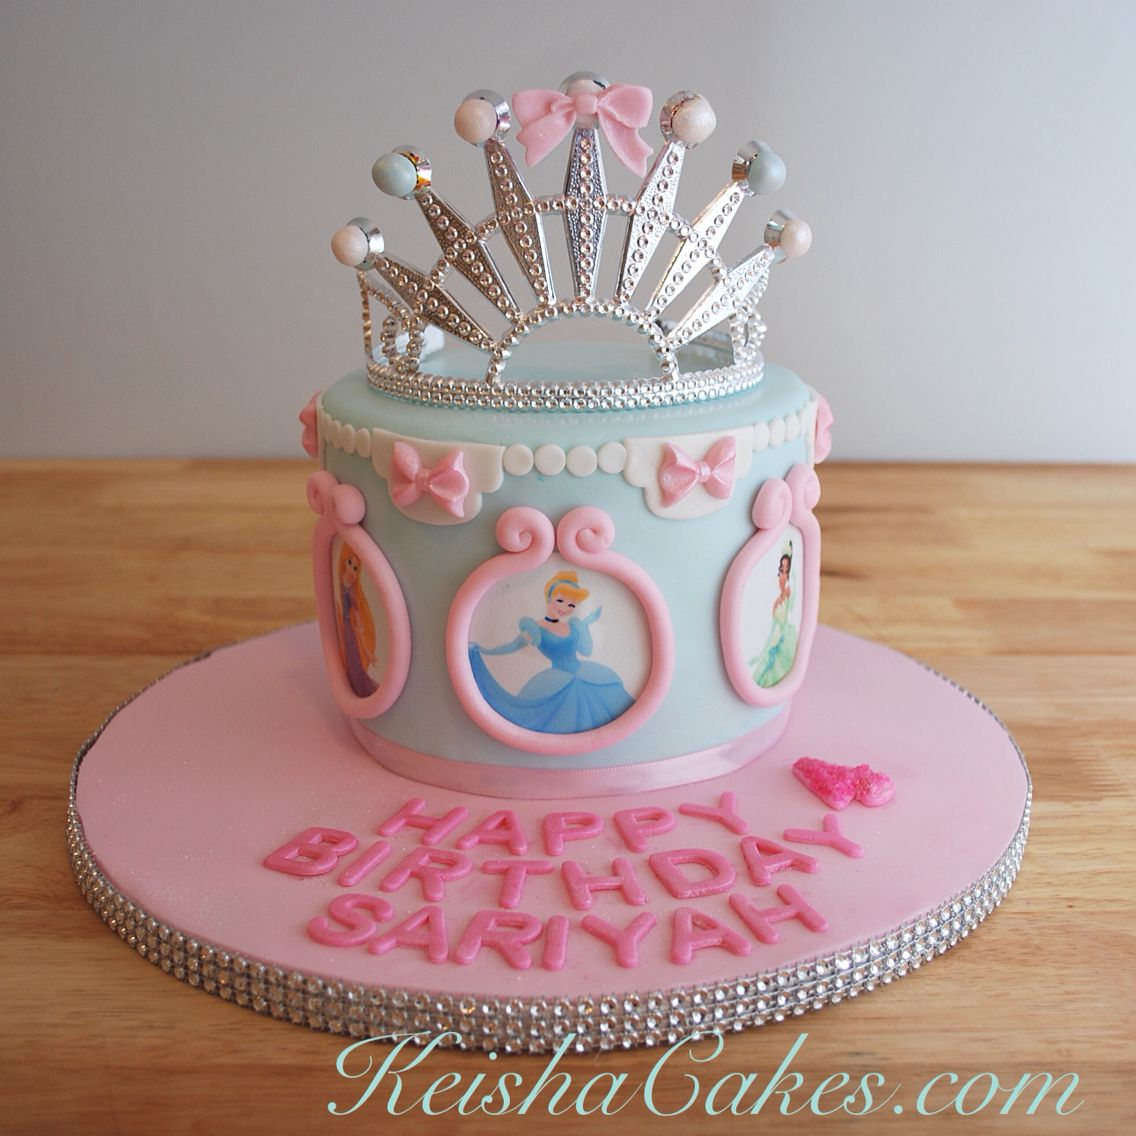 Disney Princesses cake for a little girls 4th birthday The edible